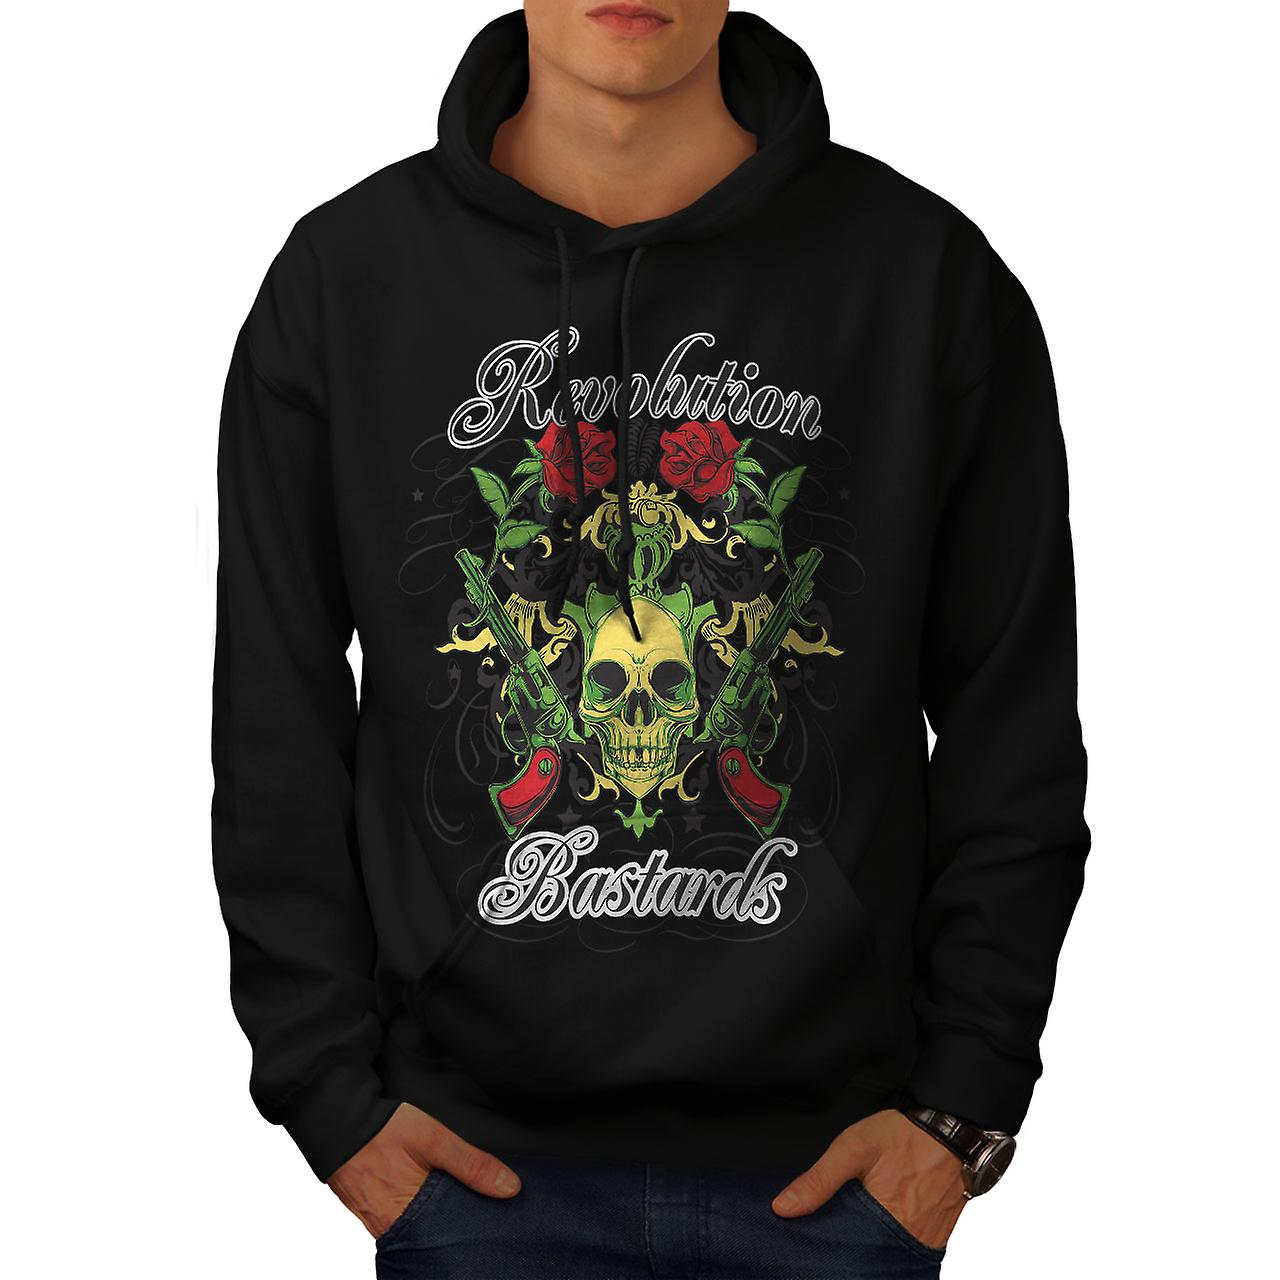 Revolution Bastards Skull Men Black Hoodie | Wellcoda